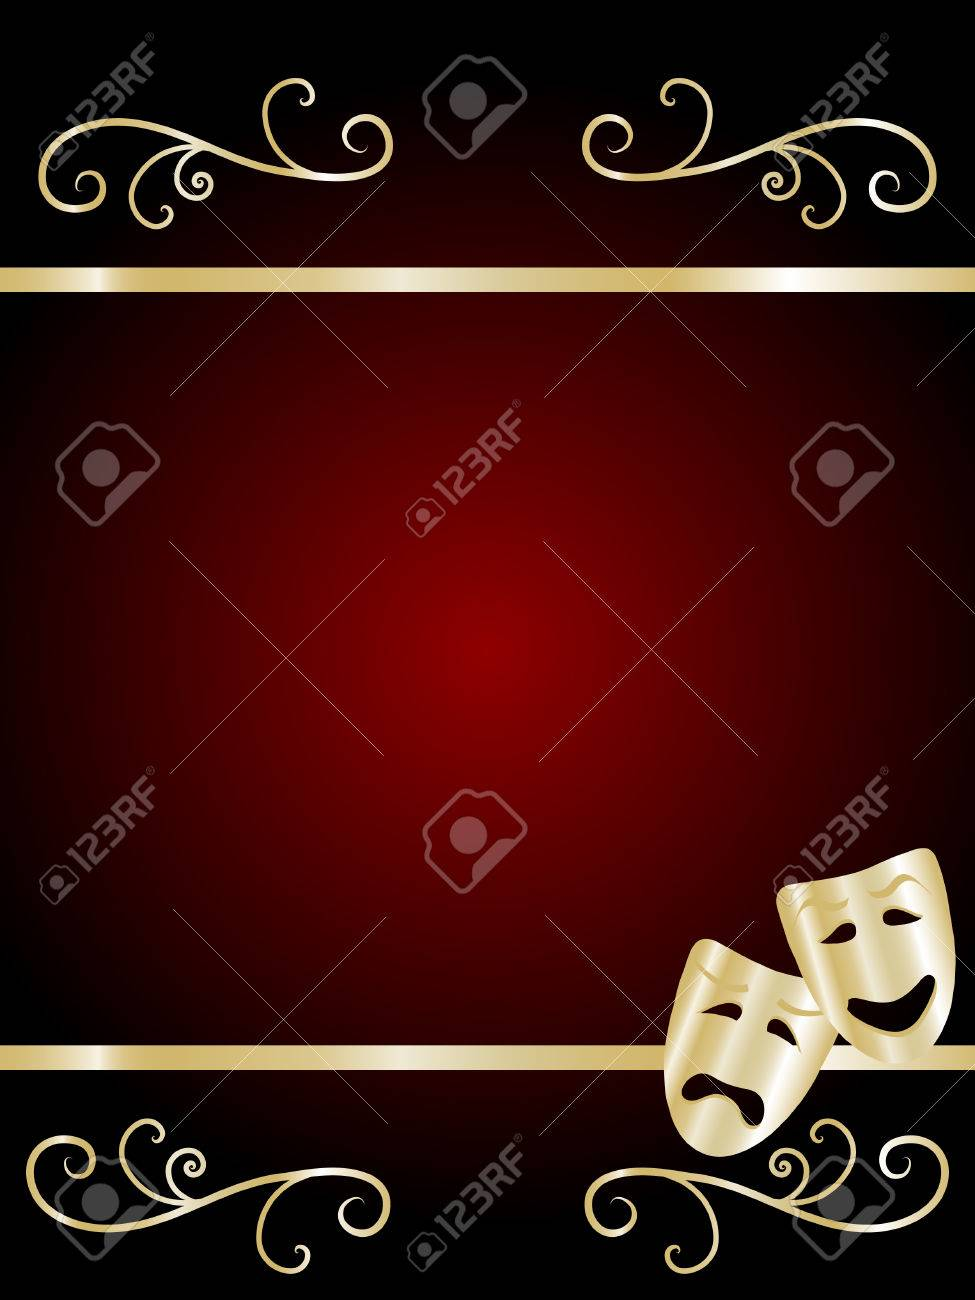 Comedy and tragedy theater masks - illustration - 7535372